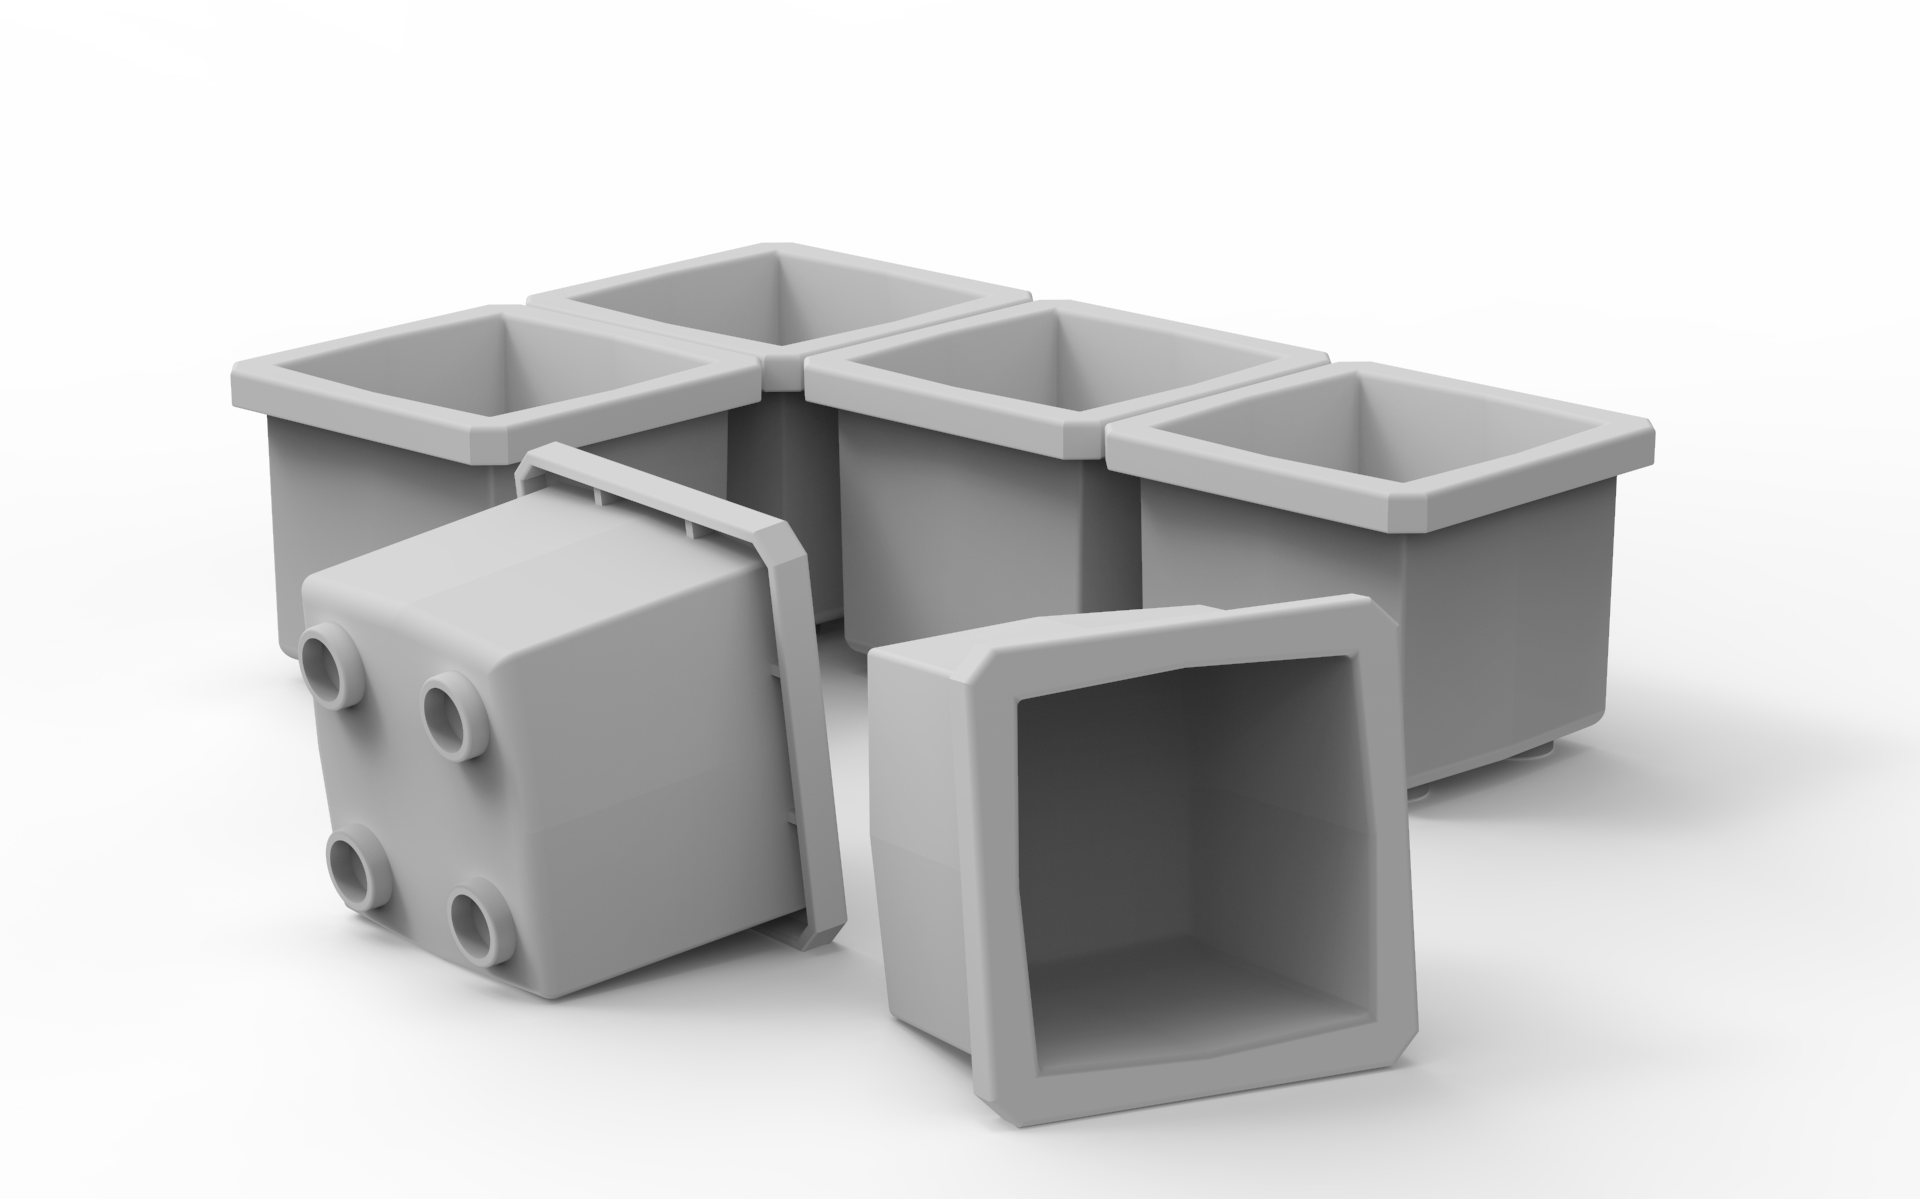 6 Customizable 1x1 Bins